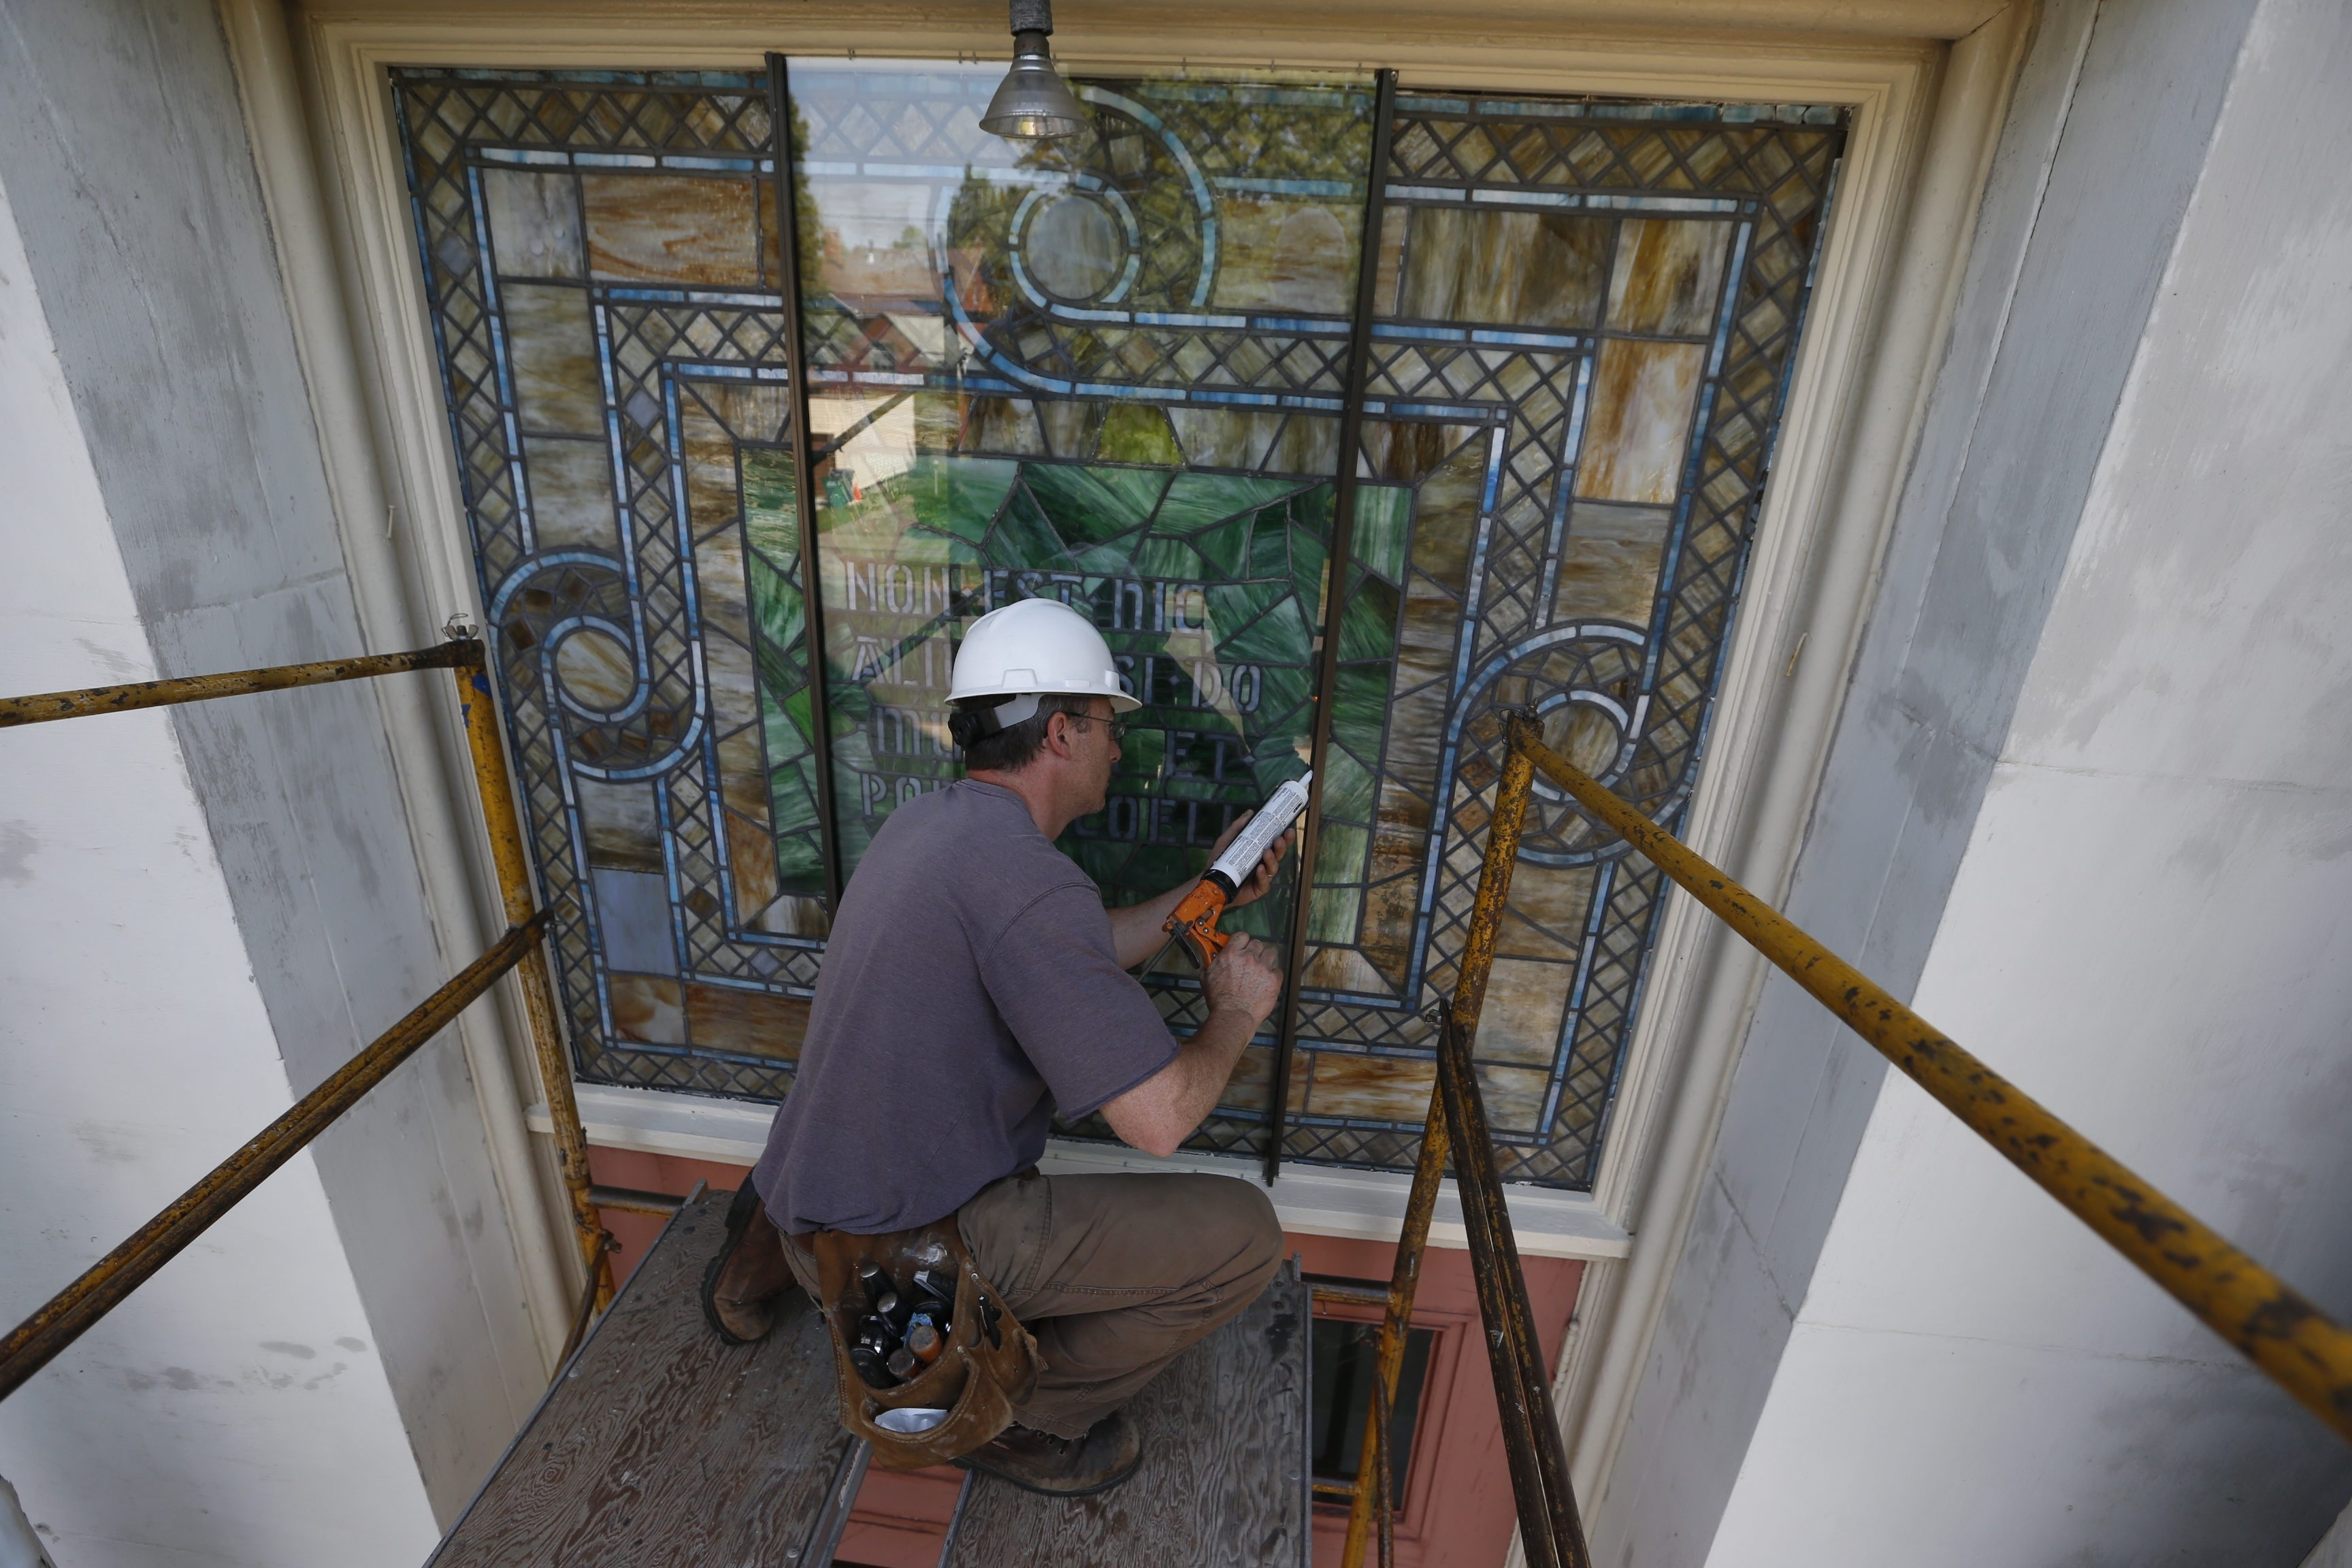 Colin Albig from Images in Glass installs a sheet of glass that will clearly reveal but also protect one of the three stained-glass windows discovered hidden behind Plexiglas at the Religious Arts Center in Black Rock. The building was formerly St. Francis Xavier Church.